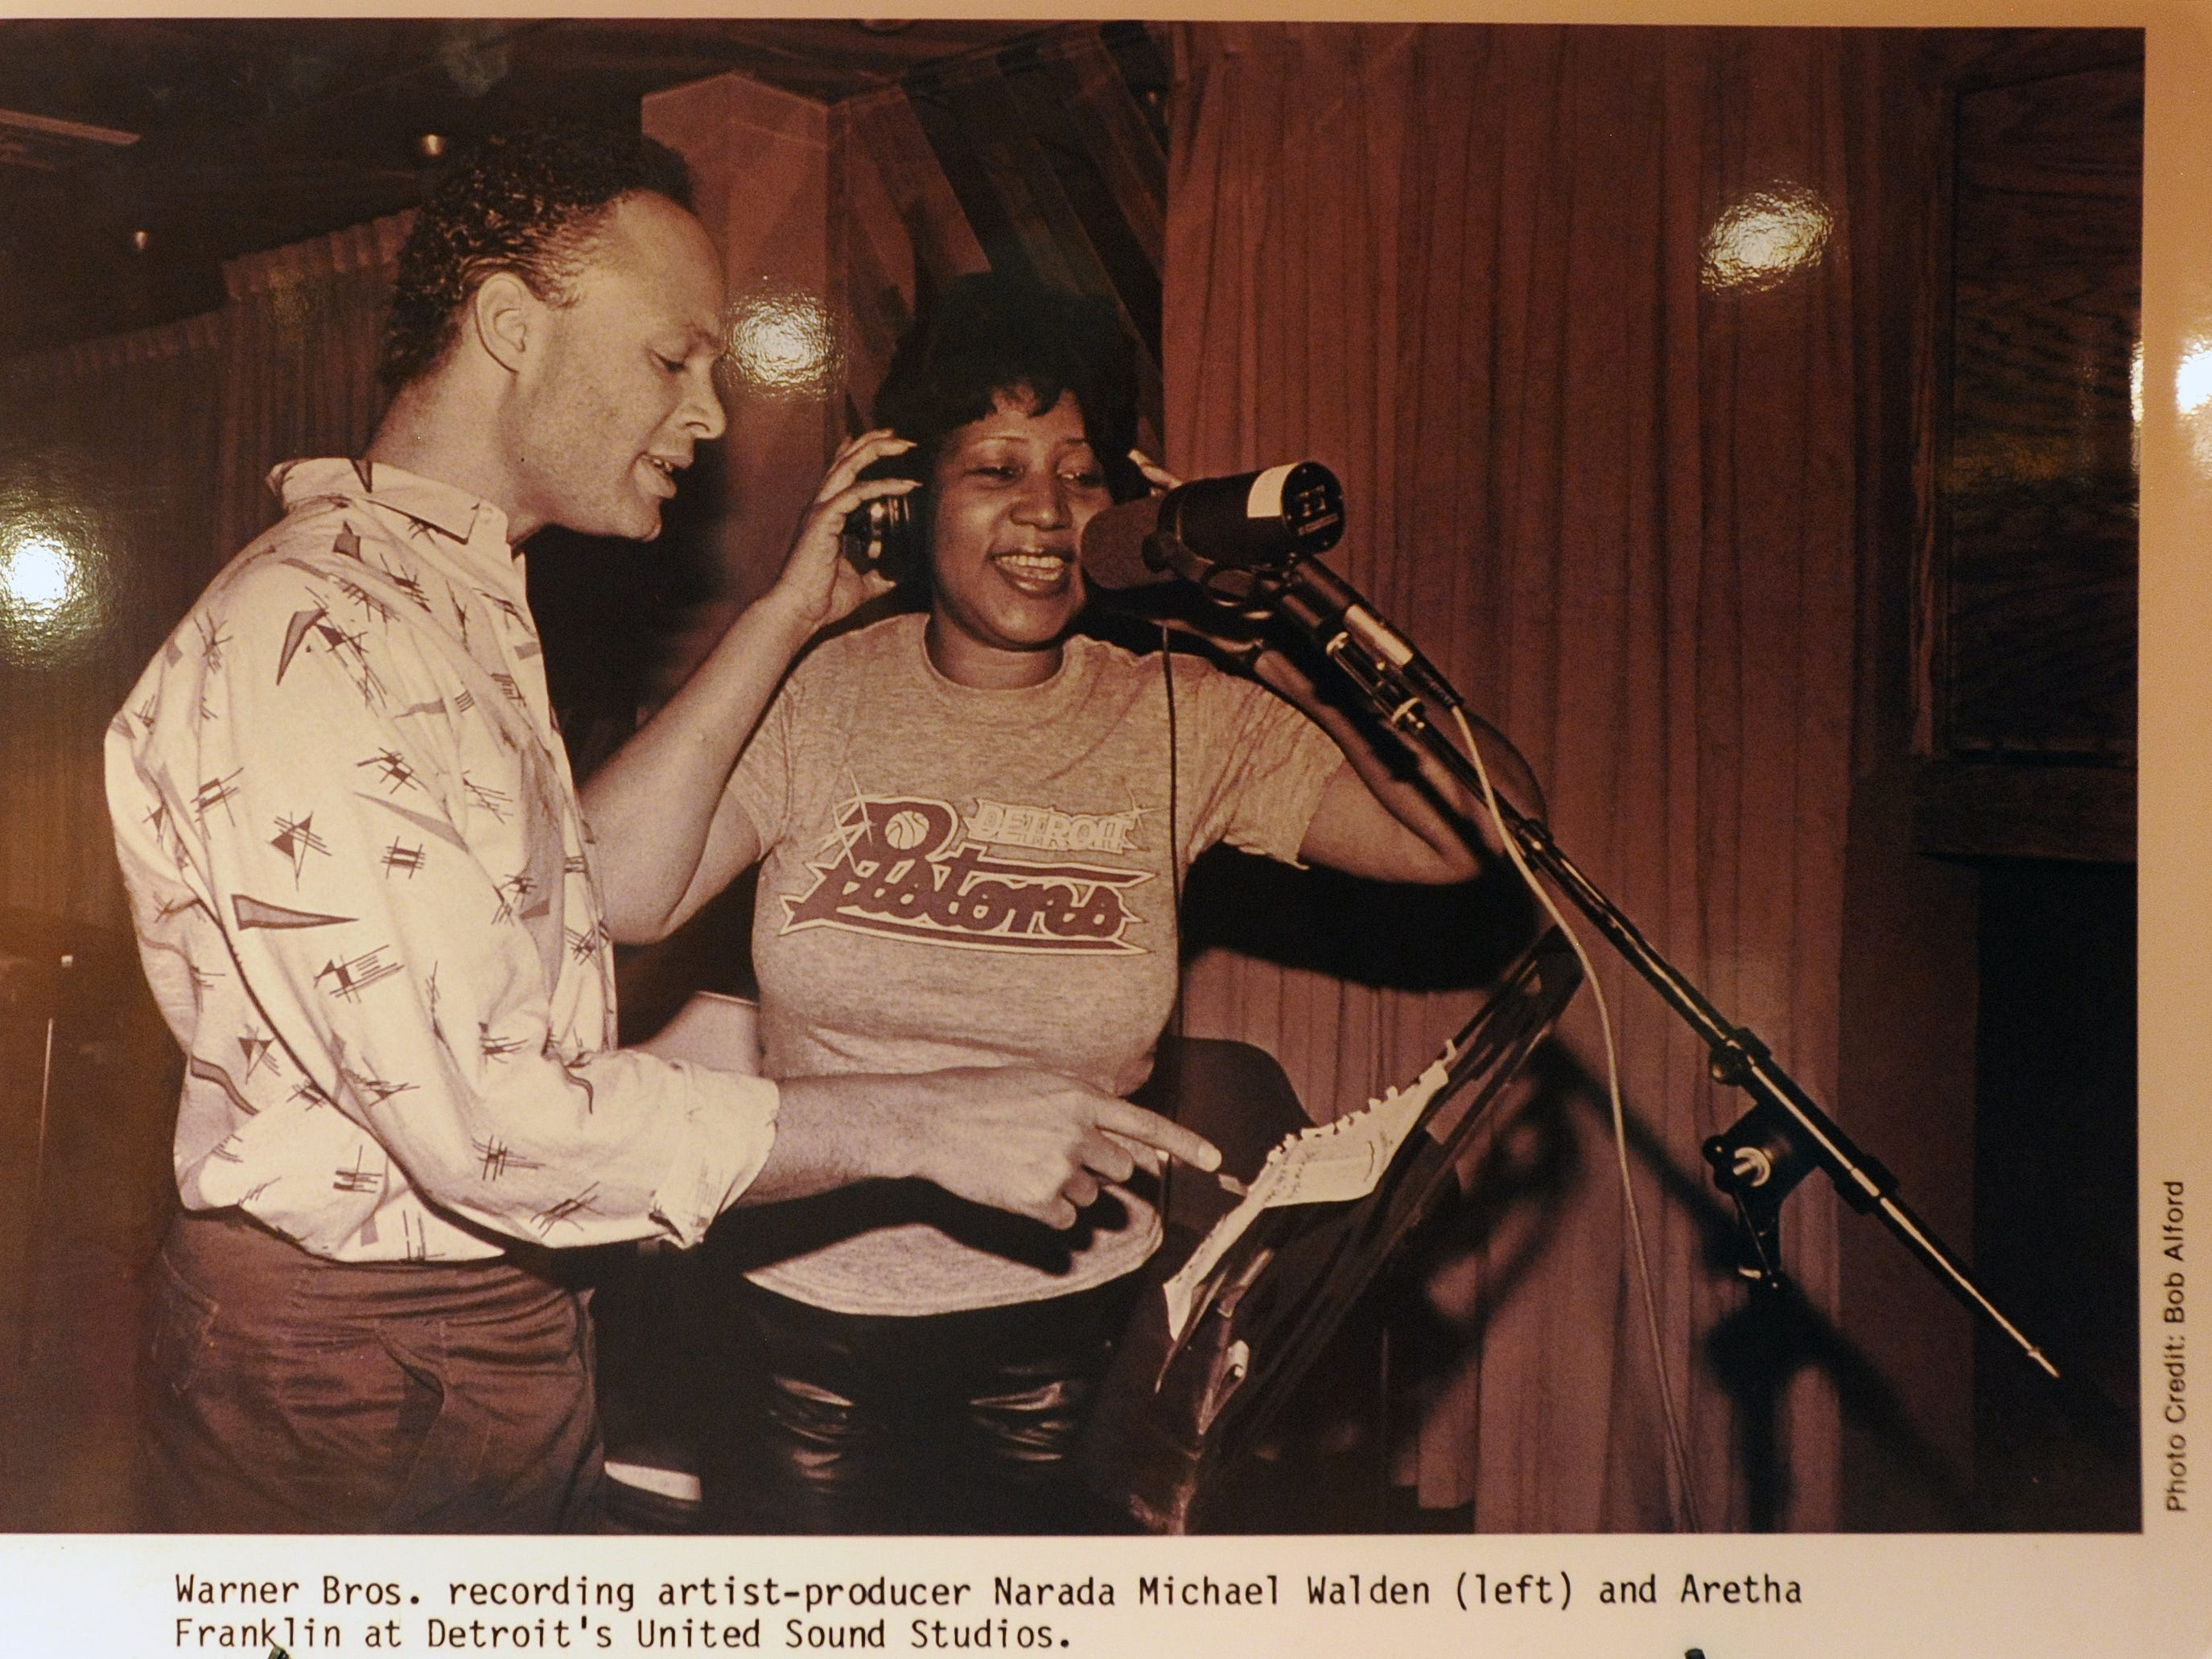 An old photo of Aretha Franklin singing with recording artist producer Narada Michael Walden.